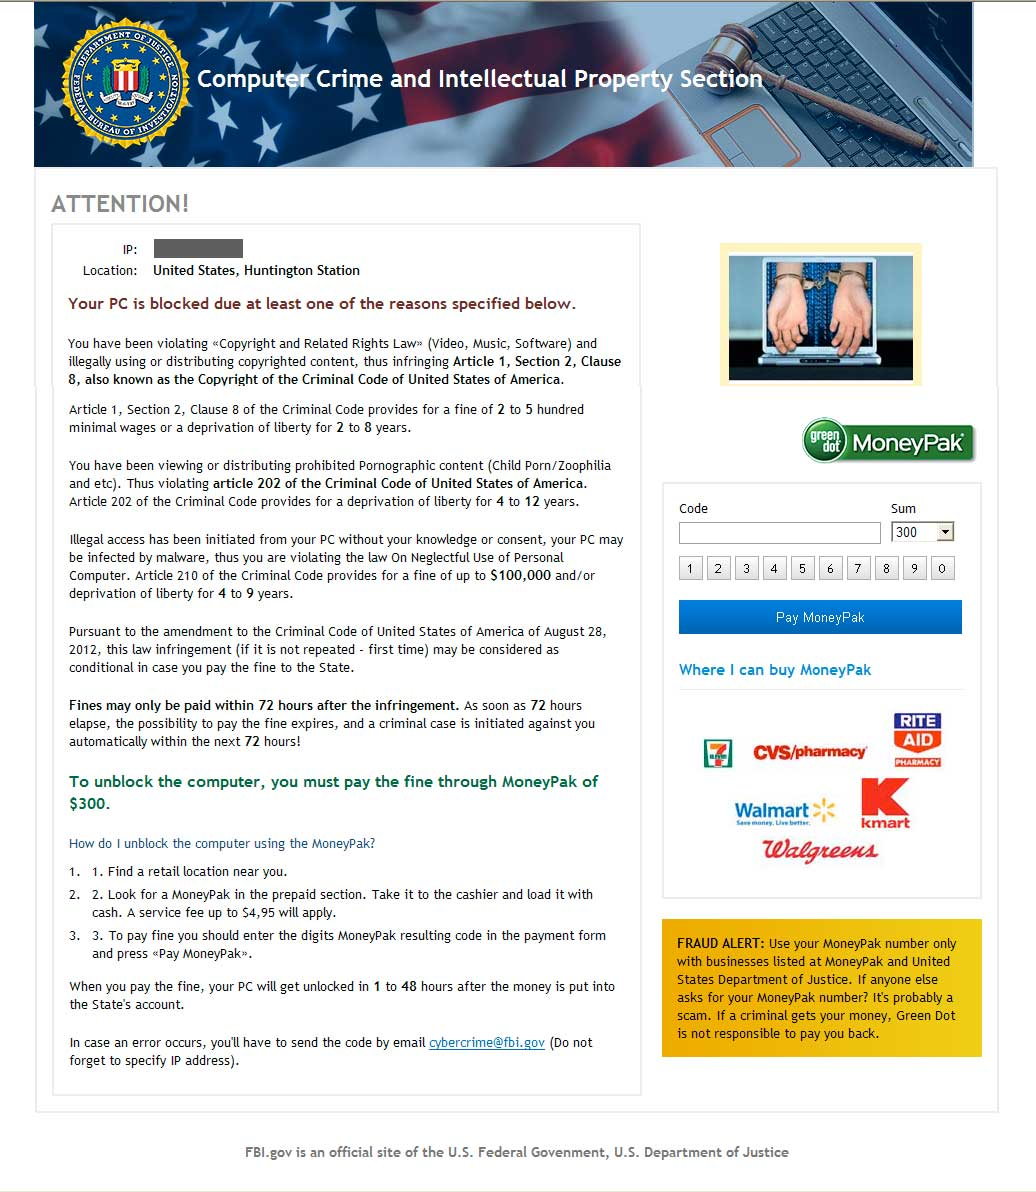 Remove the Computer Crime and Intellectual Property Section Ransomware